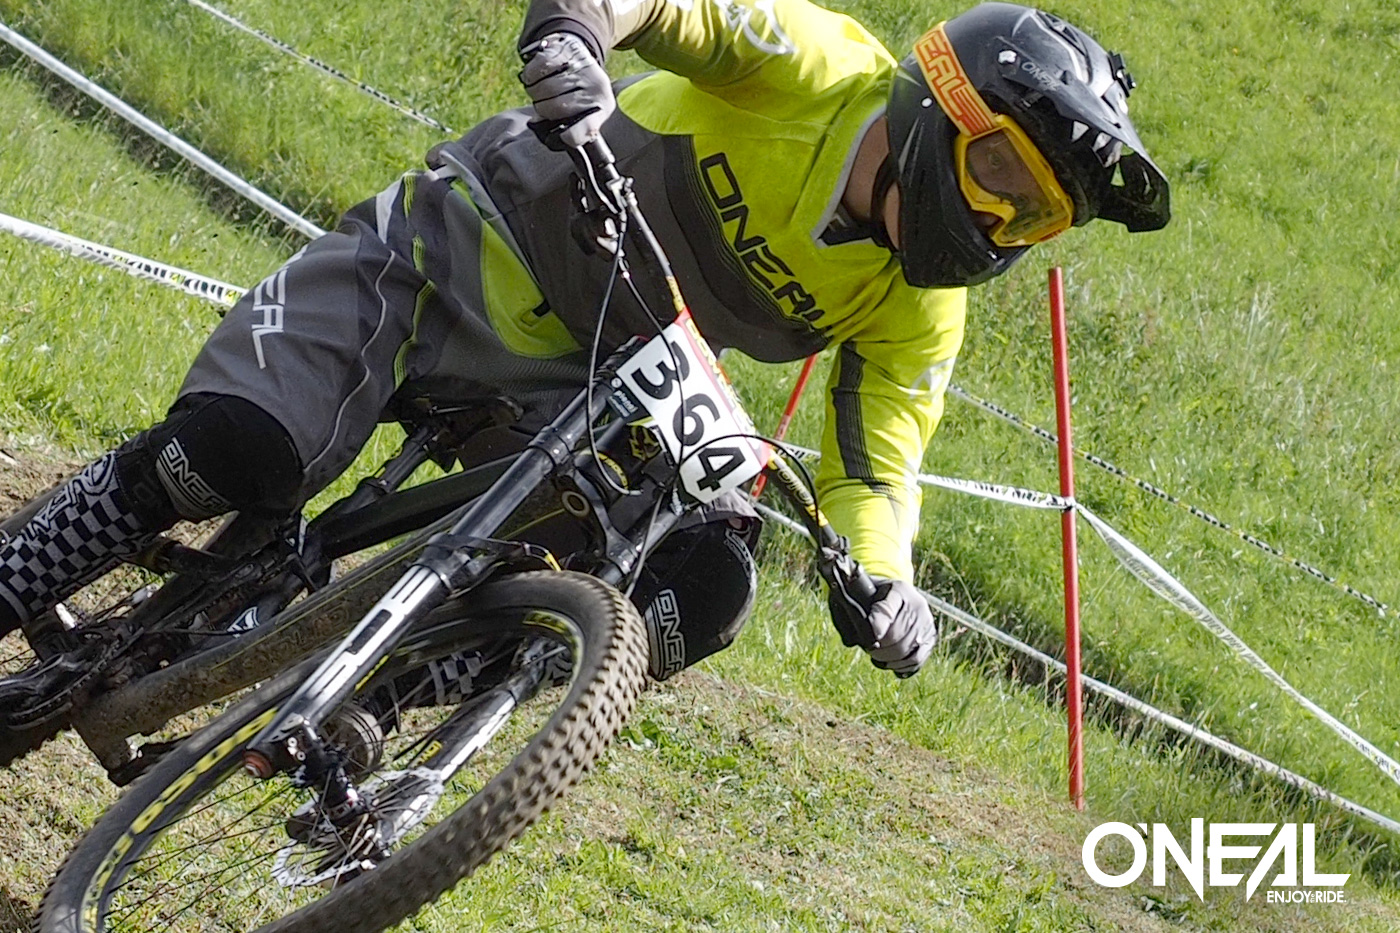 O'Neal's Max Hartenstern (U19) and Jan Flor (U17) were dominating the European Downhill Cup Series in Schladming.